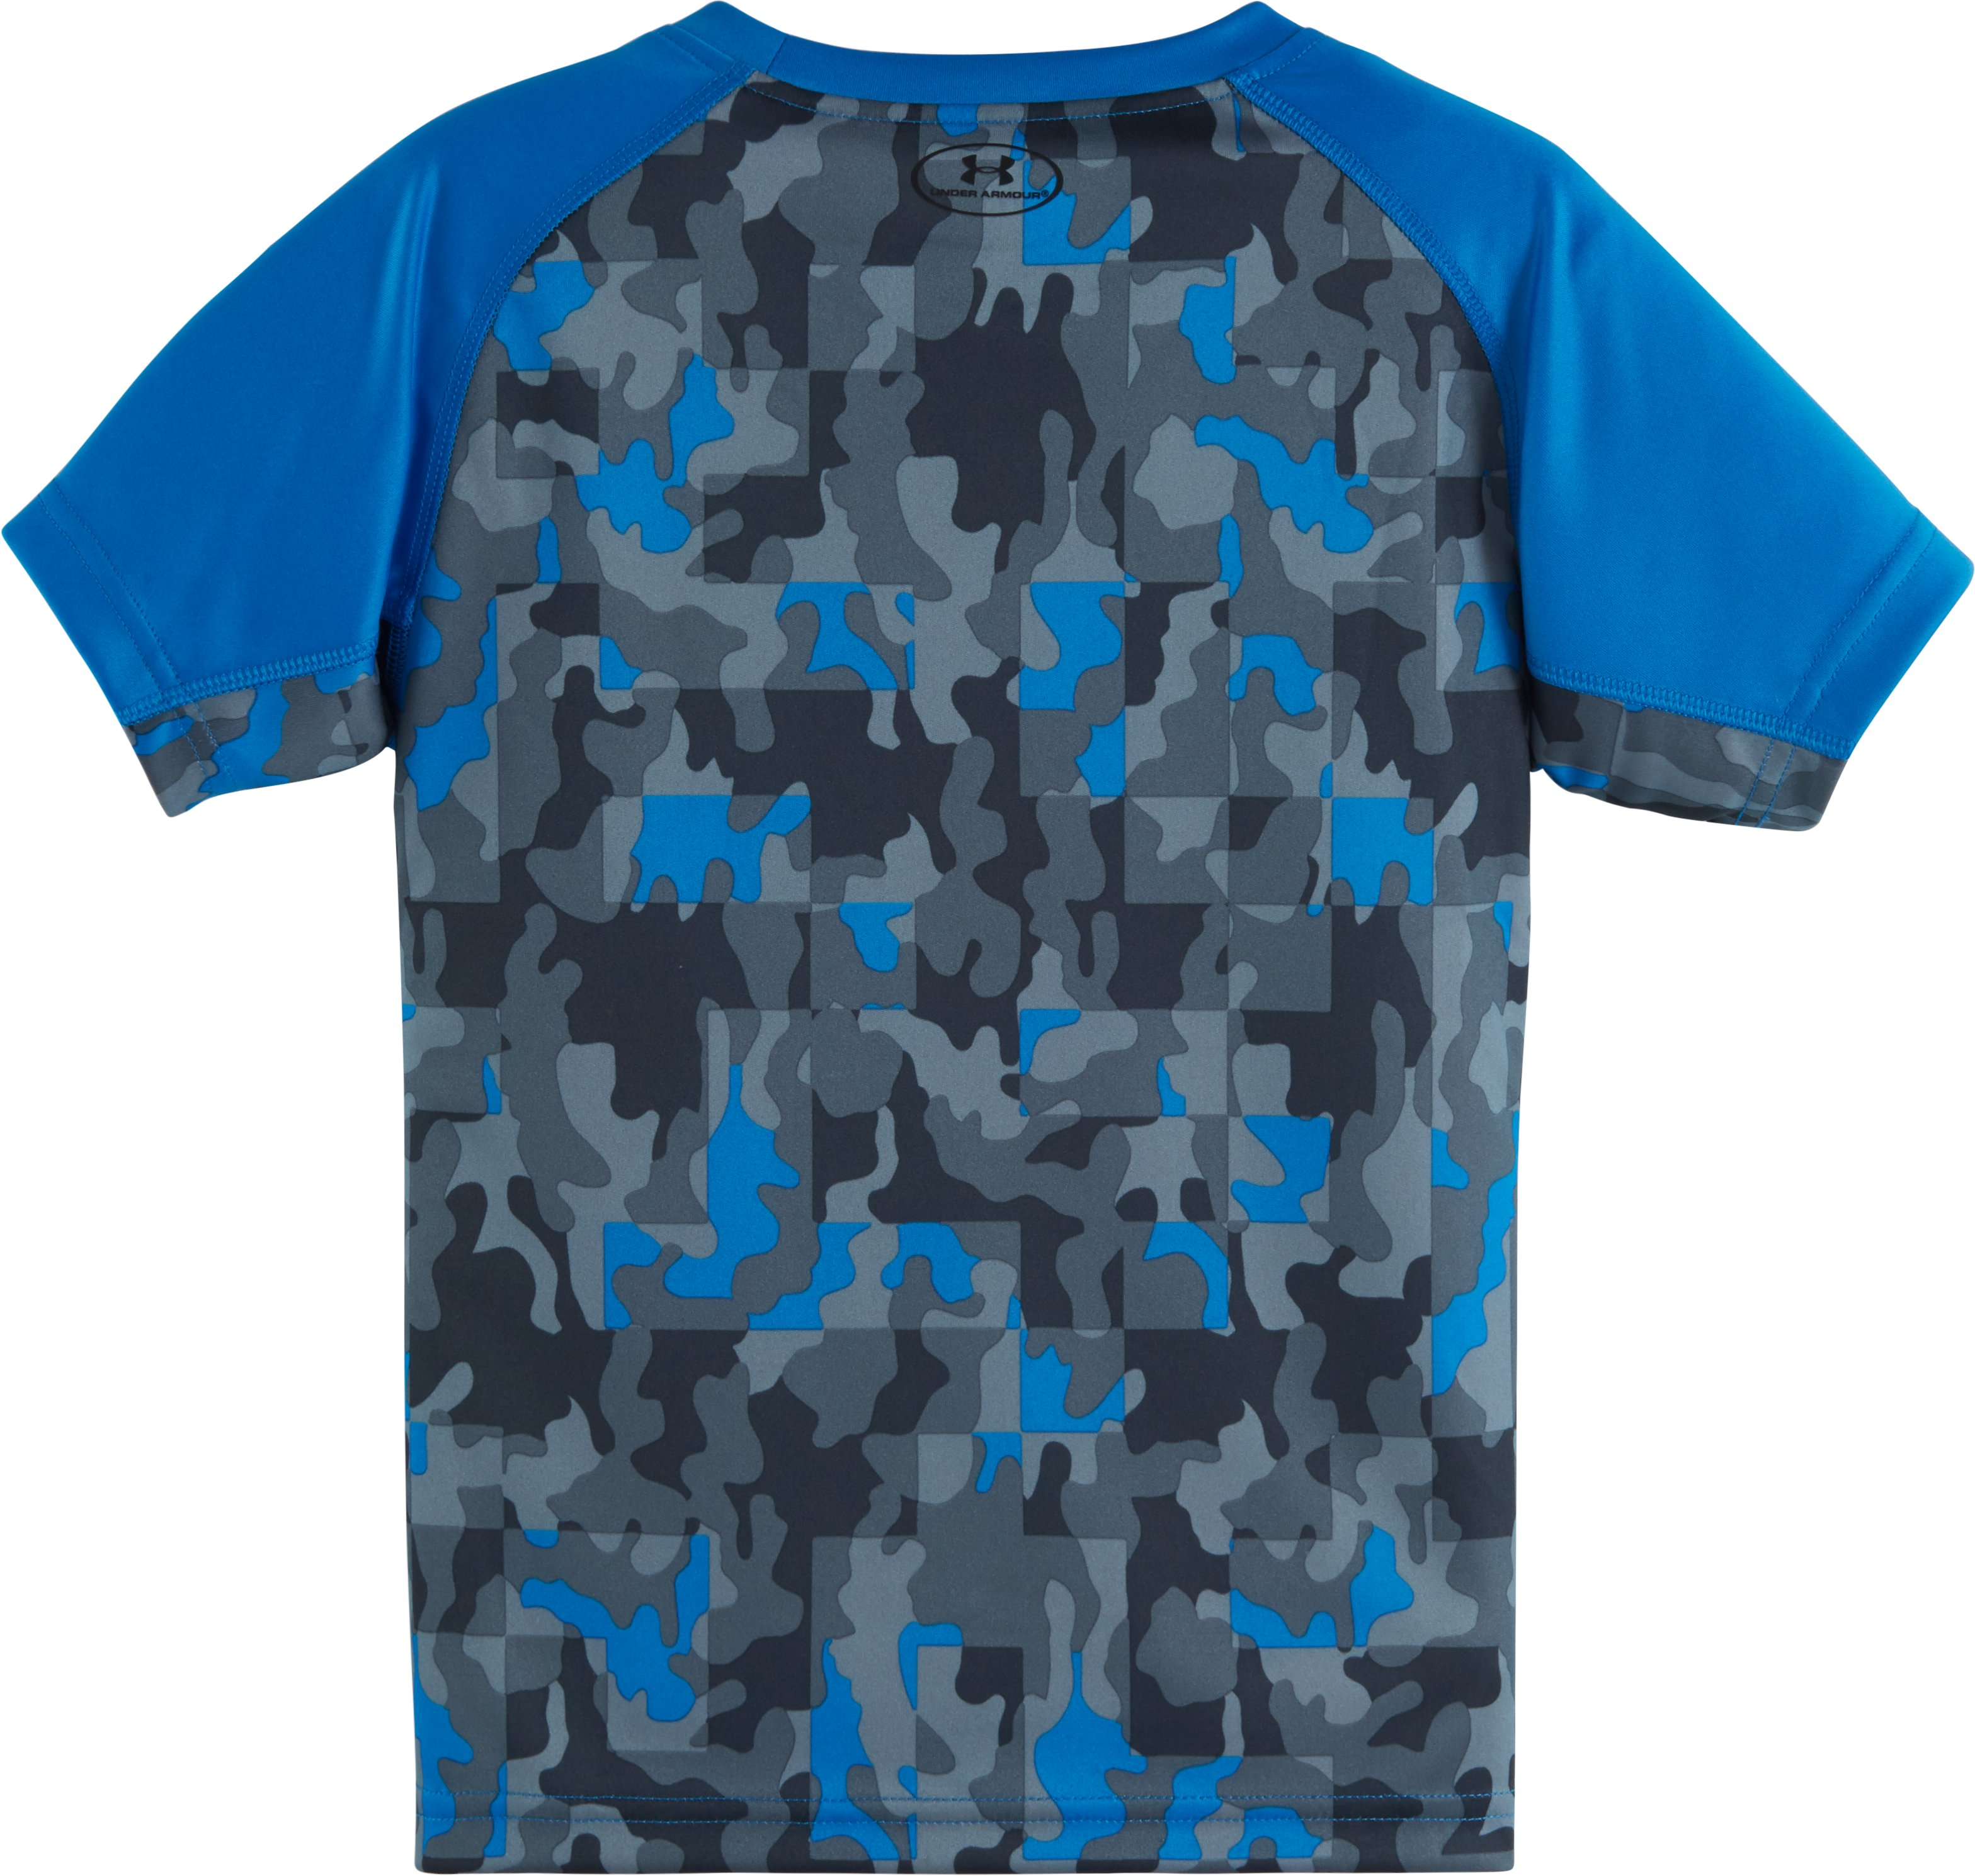 Boys' Toddler UA Atlas Camo Back Short Sleeve T-Shirt, BRILLIANT BLUE,